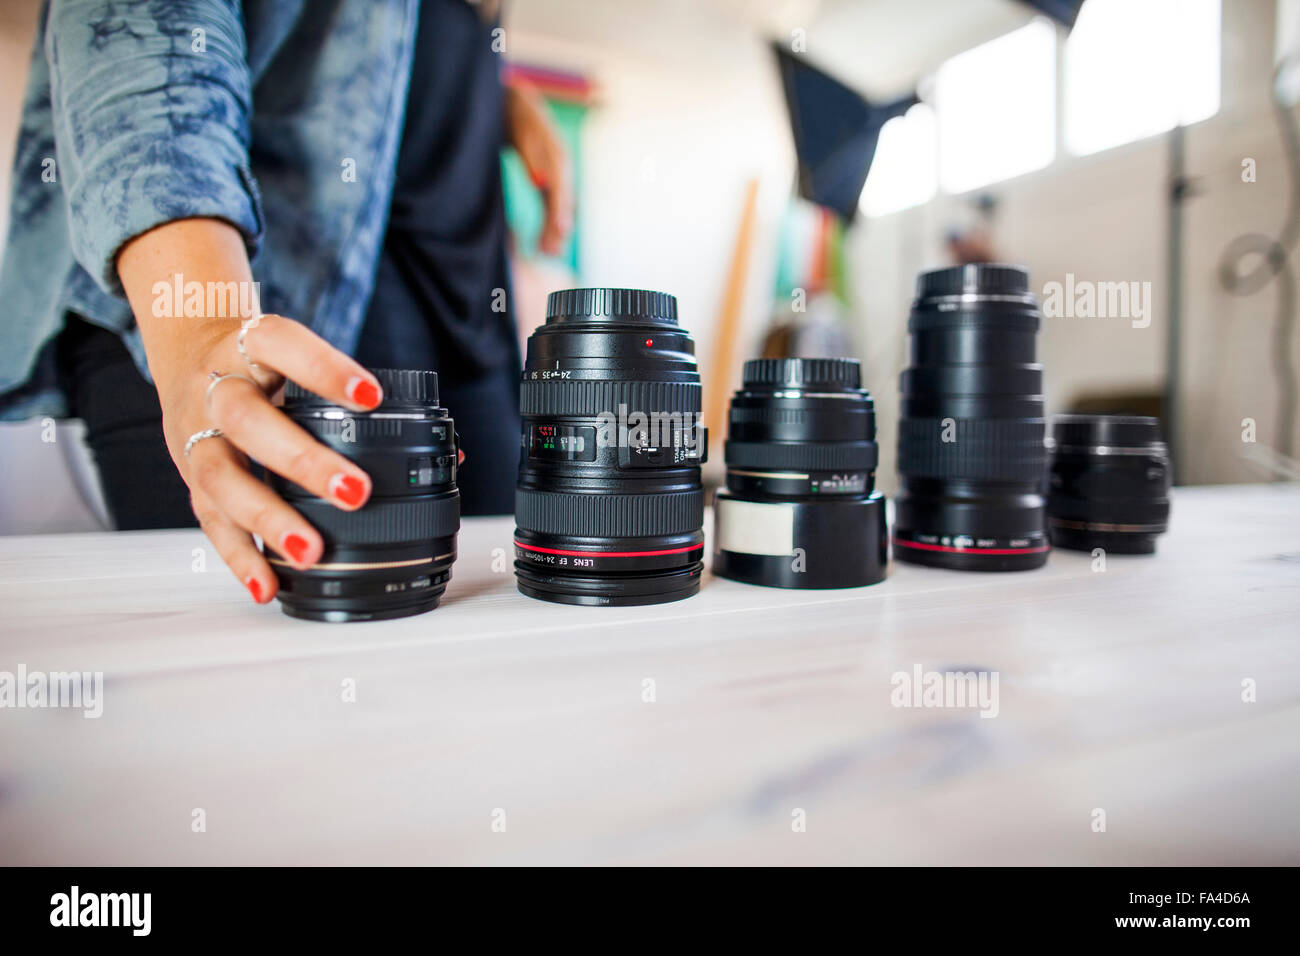 Midsection of photo assistant arranging various lenses on table in studio - Stock Image